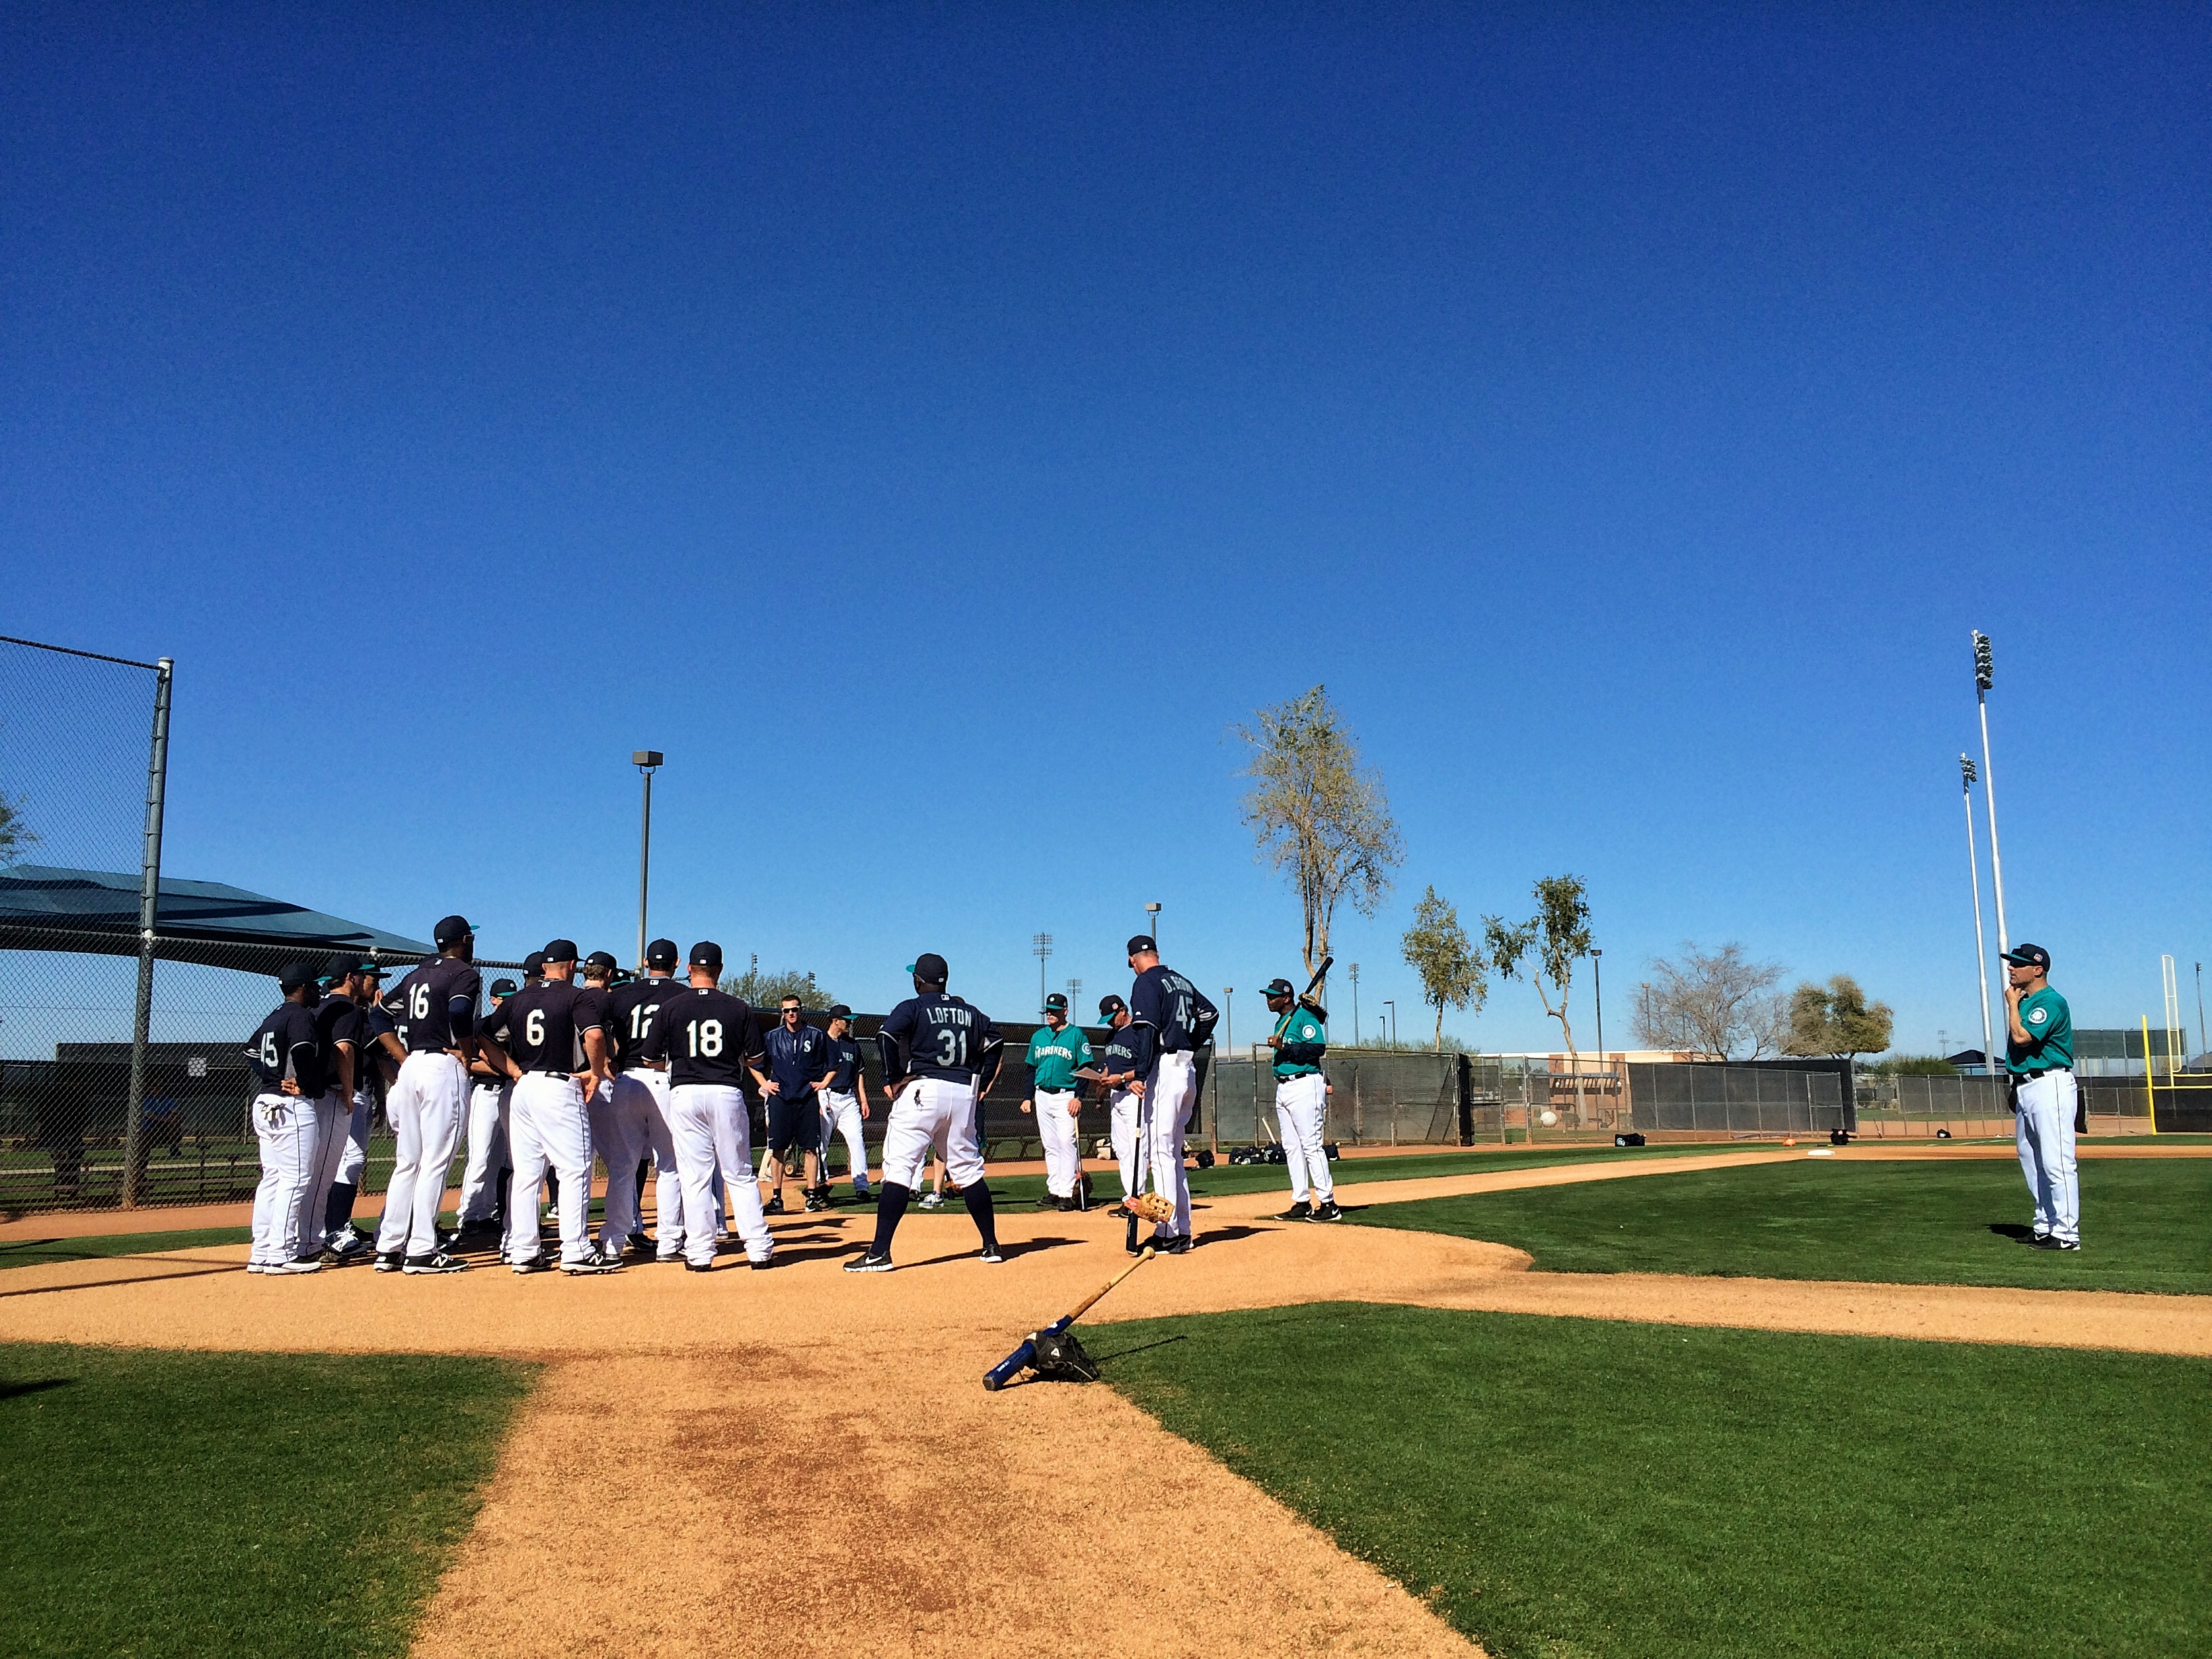 Mariners spring training update day 3 from the corner of edgar mariners spring training update day 3 from the corner of edgar dave sciox Gallery